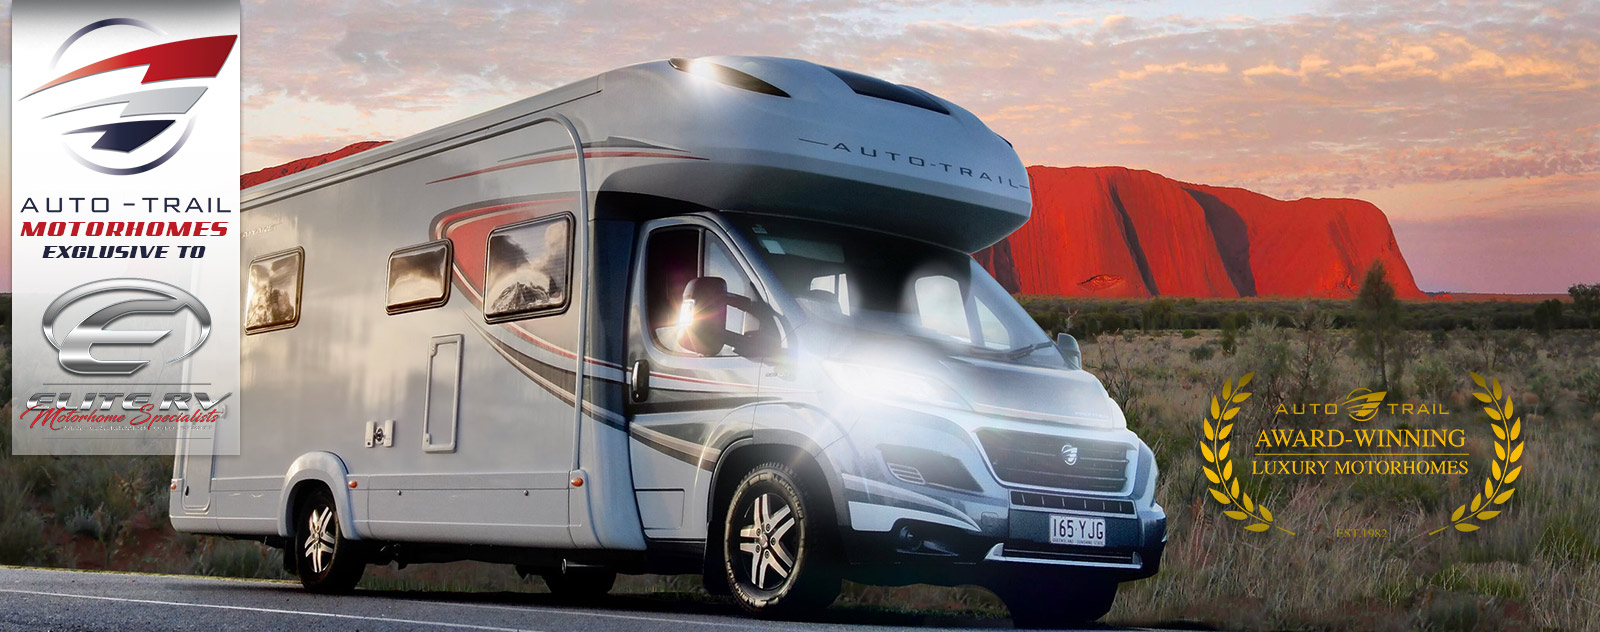 Auto-Trail motorhomes- Australias most awarded motorhome.